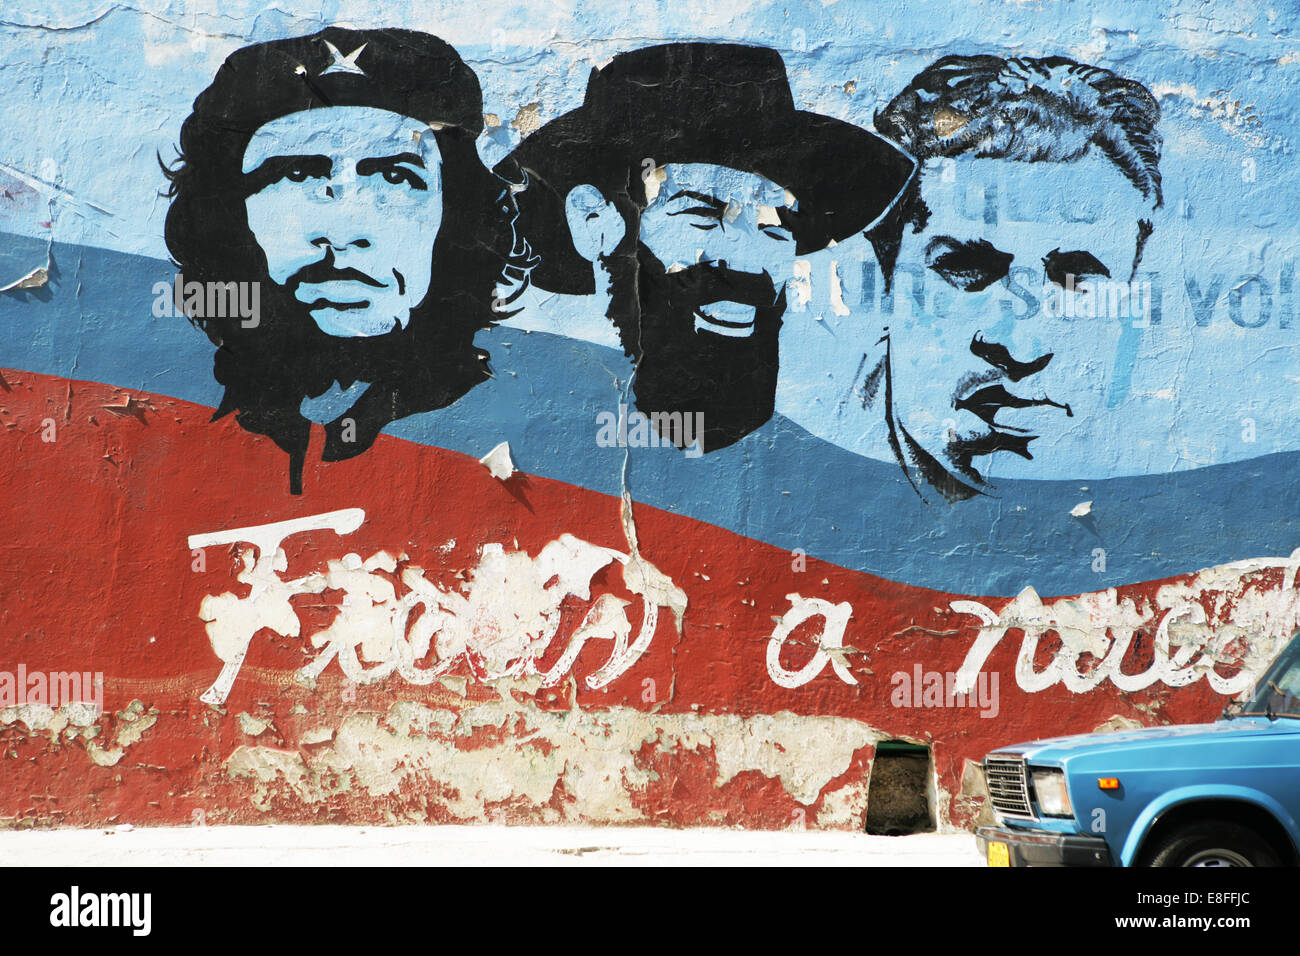 Cuba, Havana, Car parked in front of mural - Stock Image